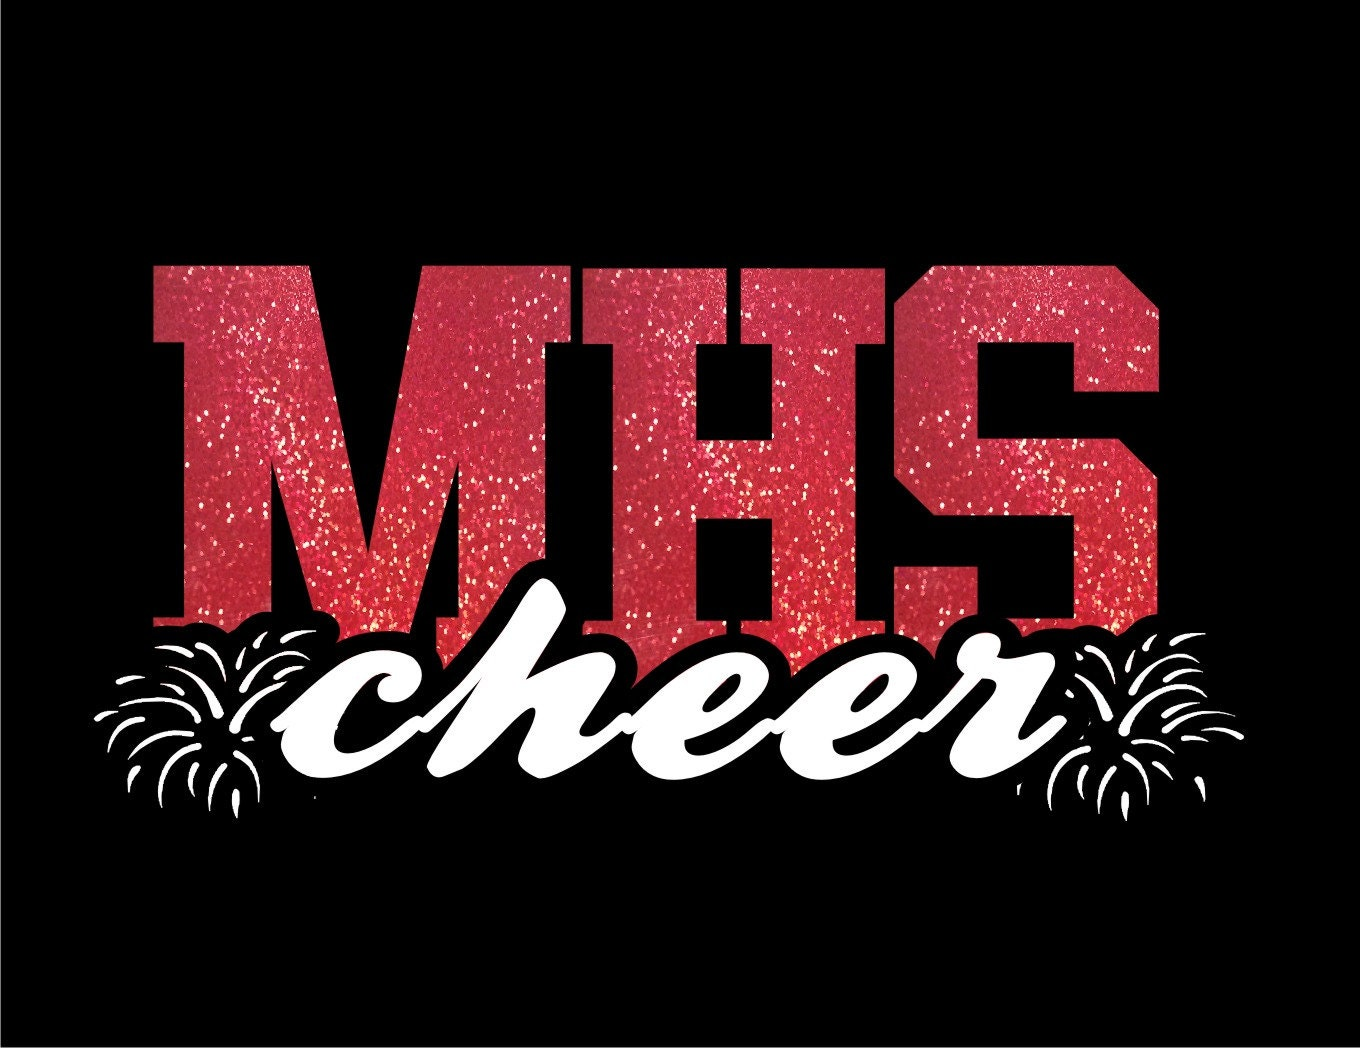 Cheer Shirt Design Ideas custom cheer shirt httpsmfacebookcomcamdencustomdesigns basketball t shirt design ideas Zoom